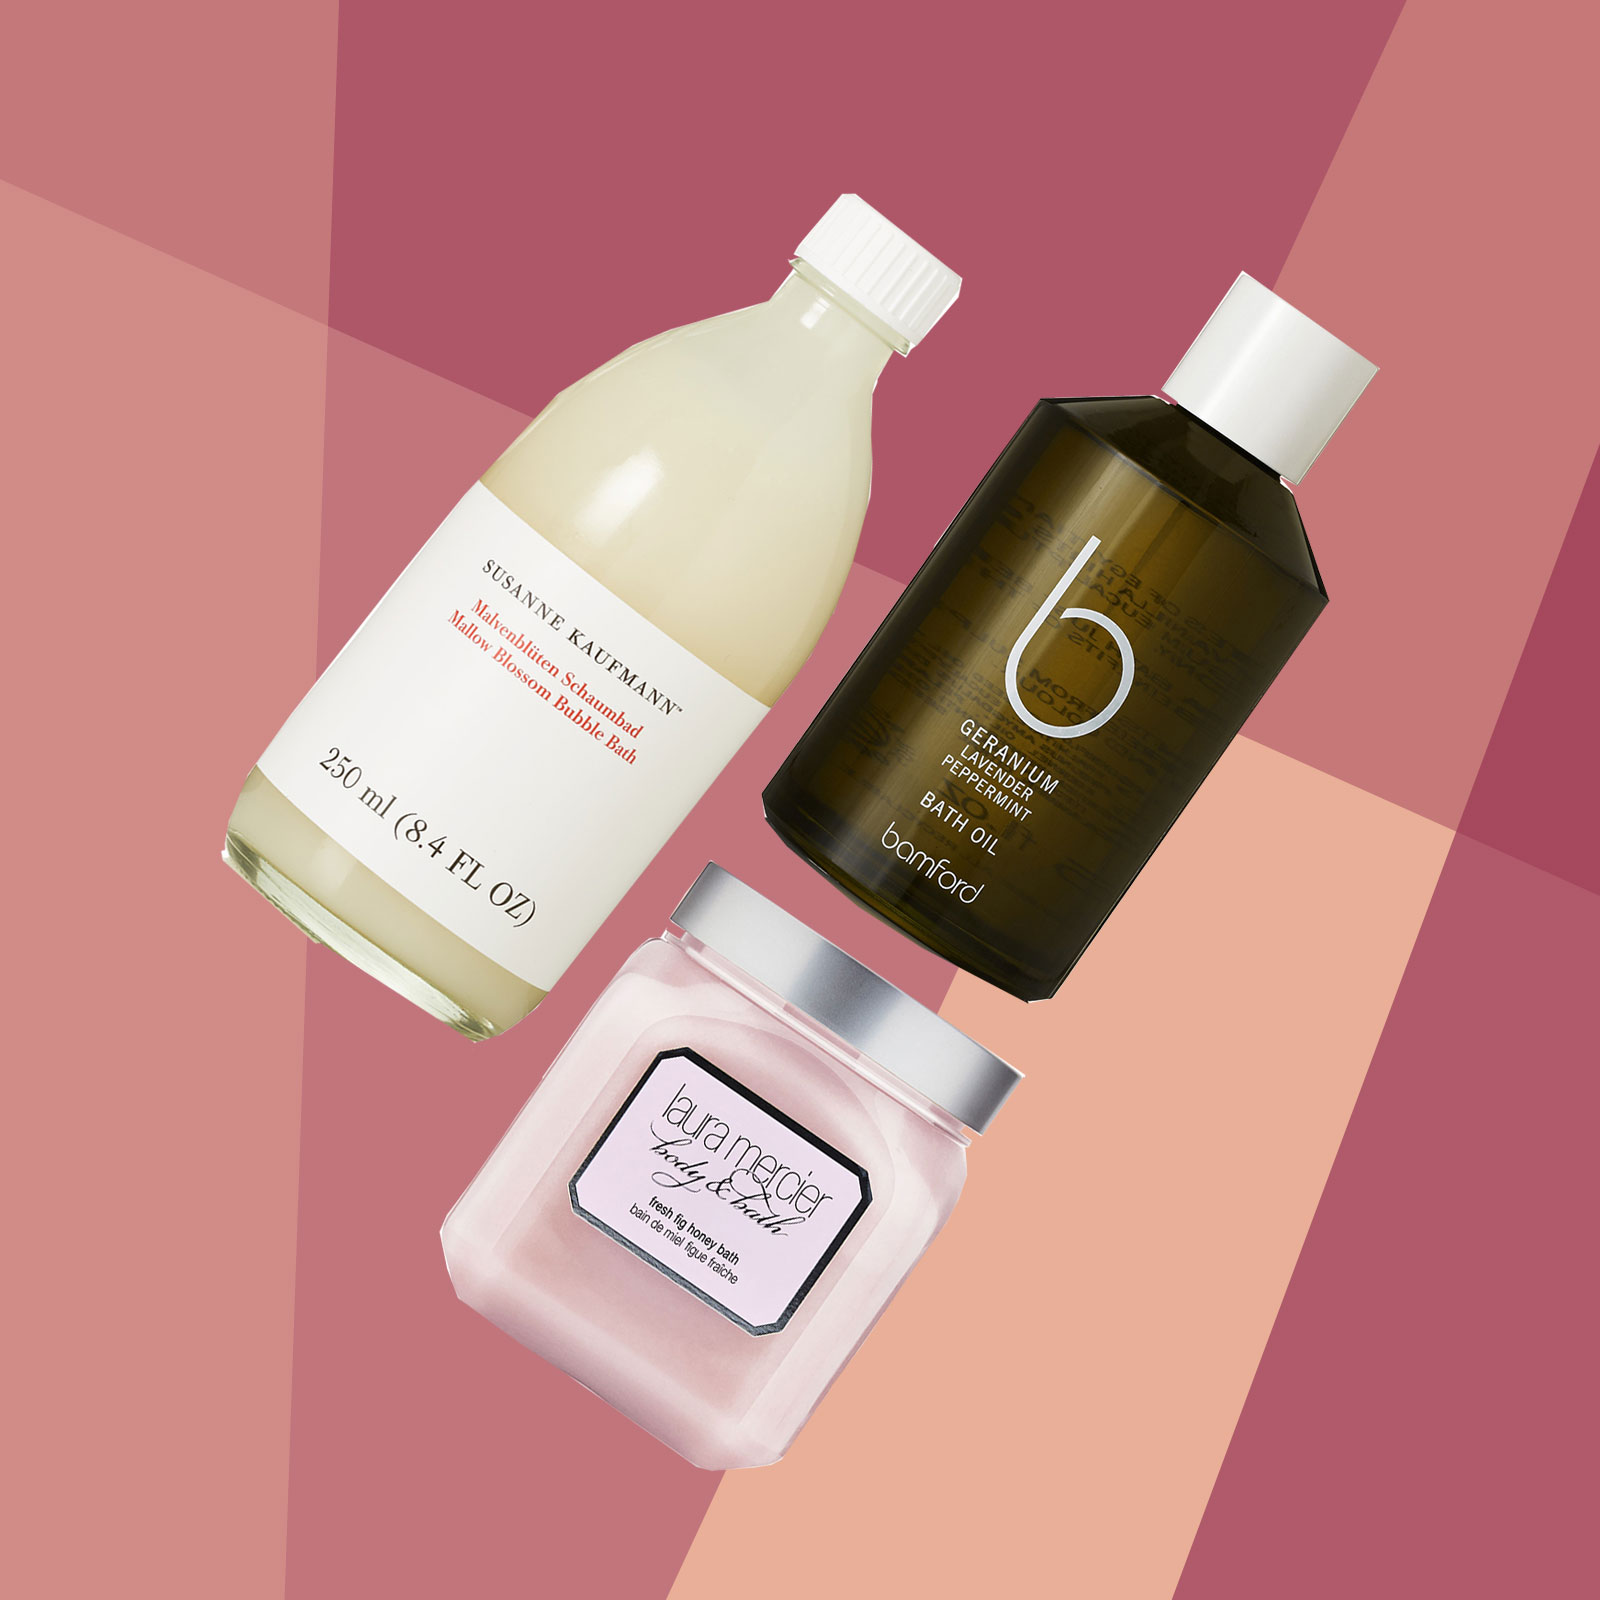 The 10 Best Skin-Softening Bath Products to Get You Through Winter